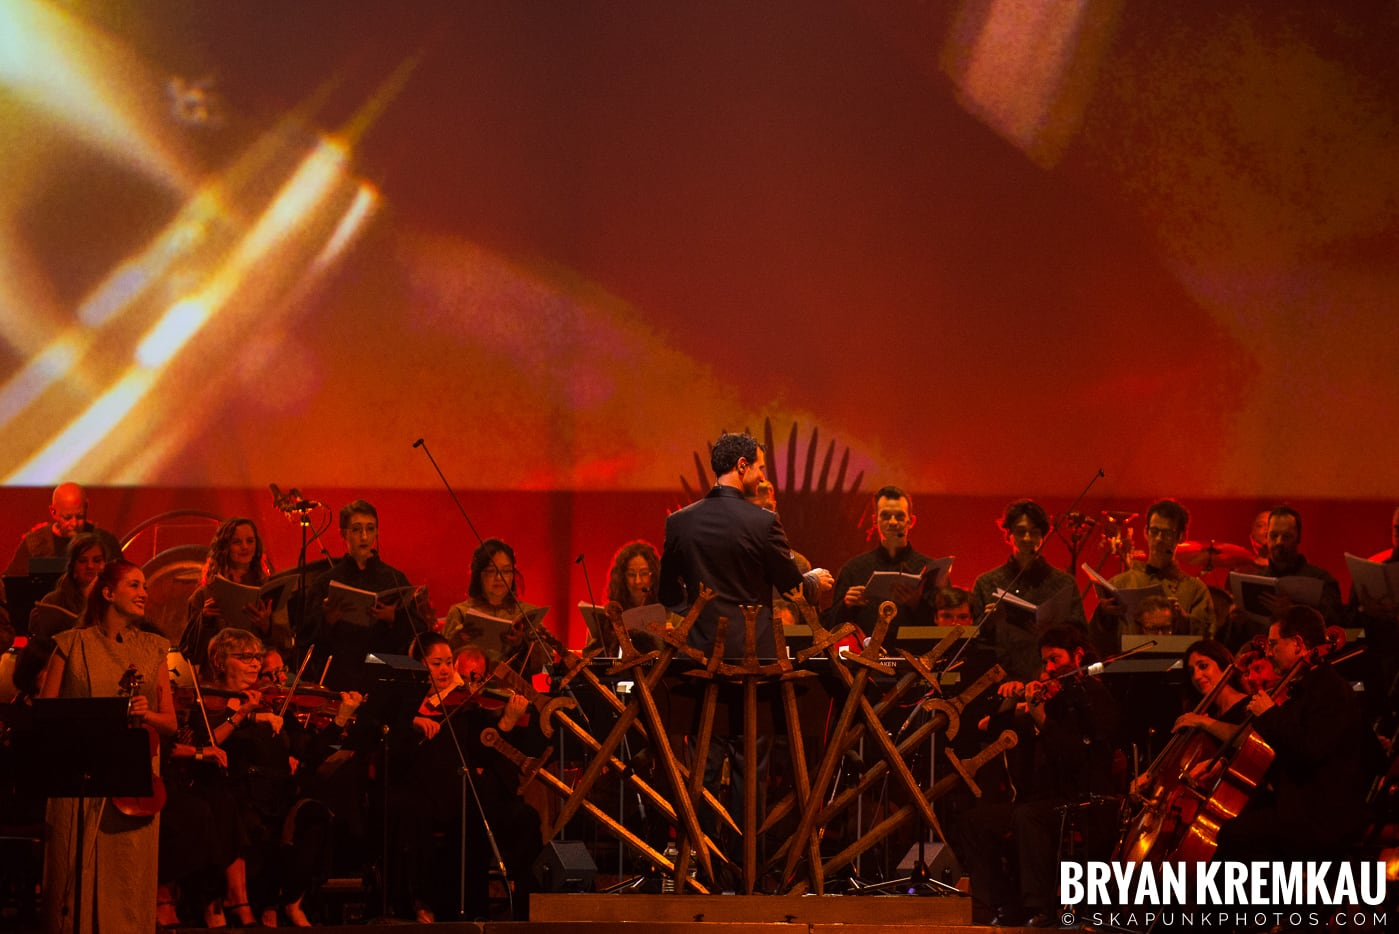 Game of Thrones Live Experience @ Prudential Center, Newark, NJ - 9.26.18 (45)